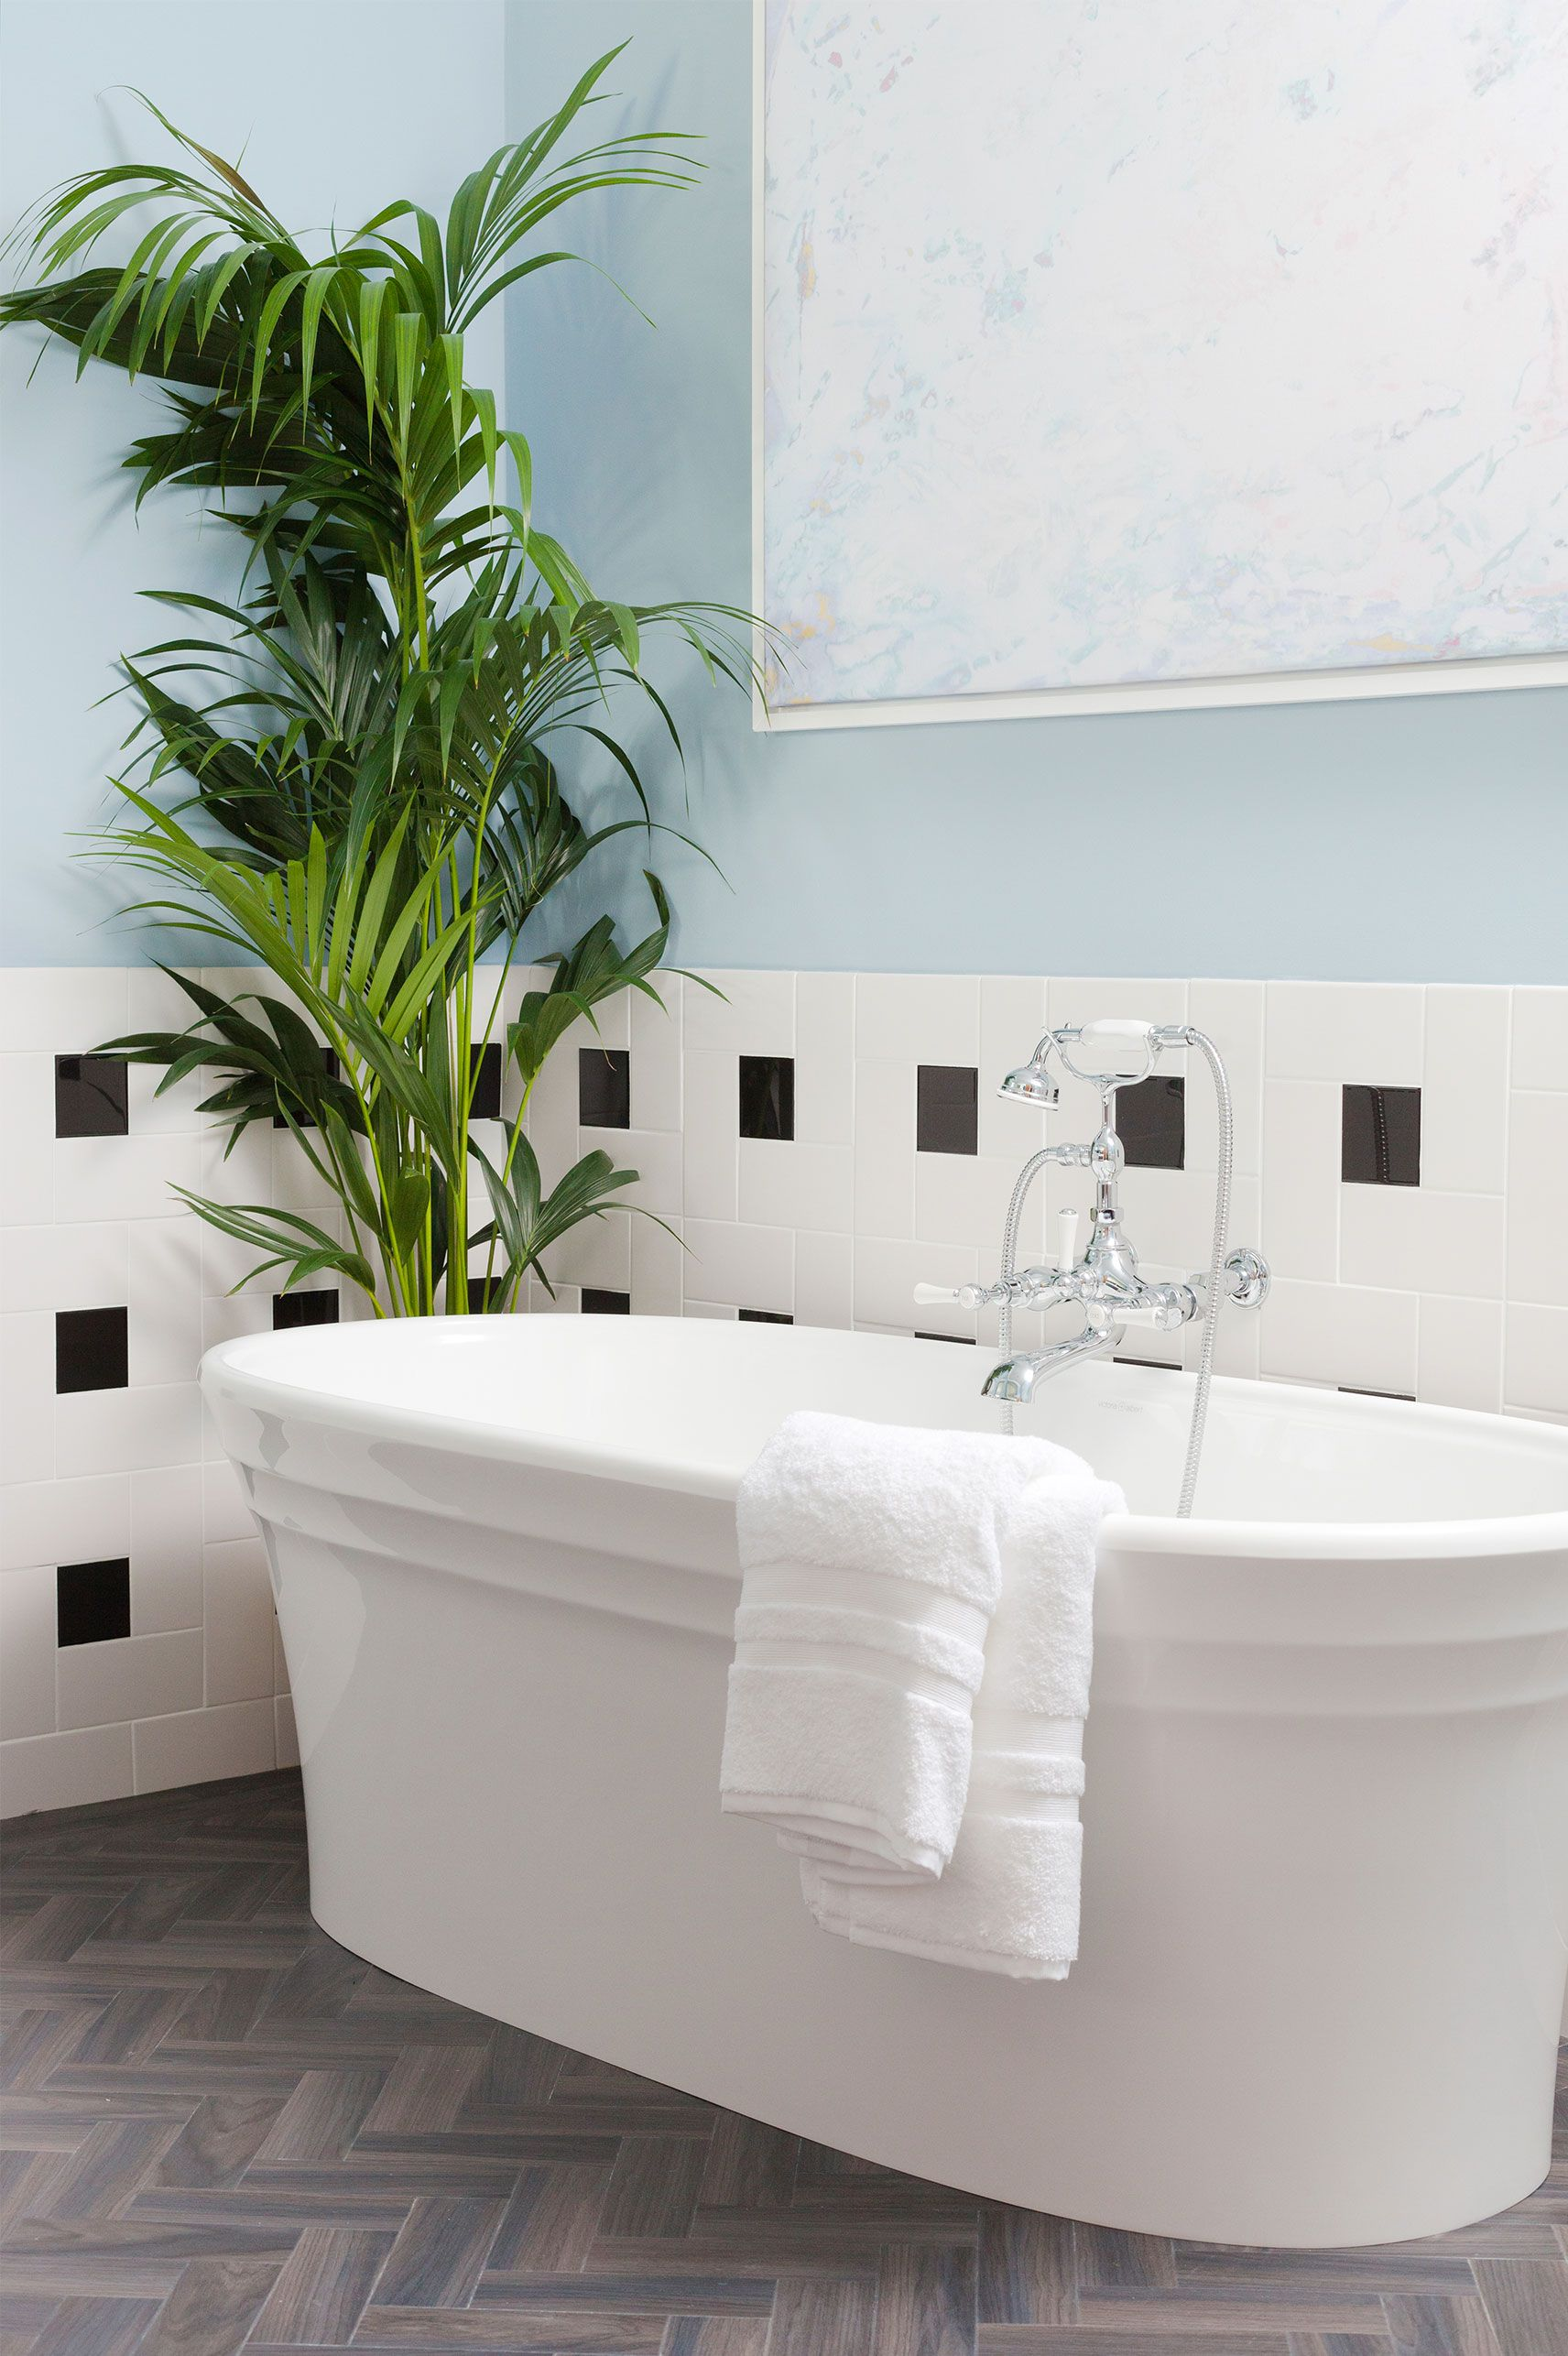 28 Bathroom Decorating Ideas On A Budget - Chic And Affordable